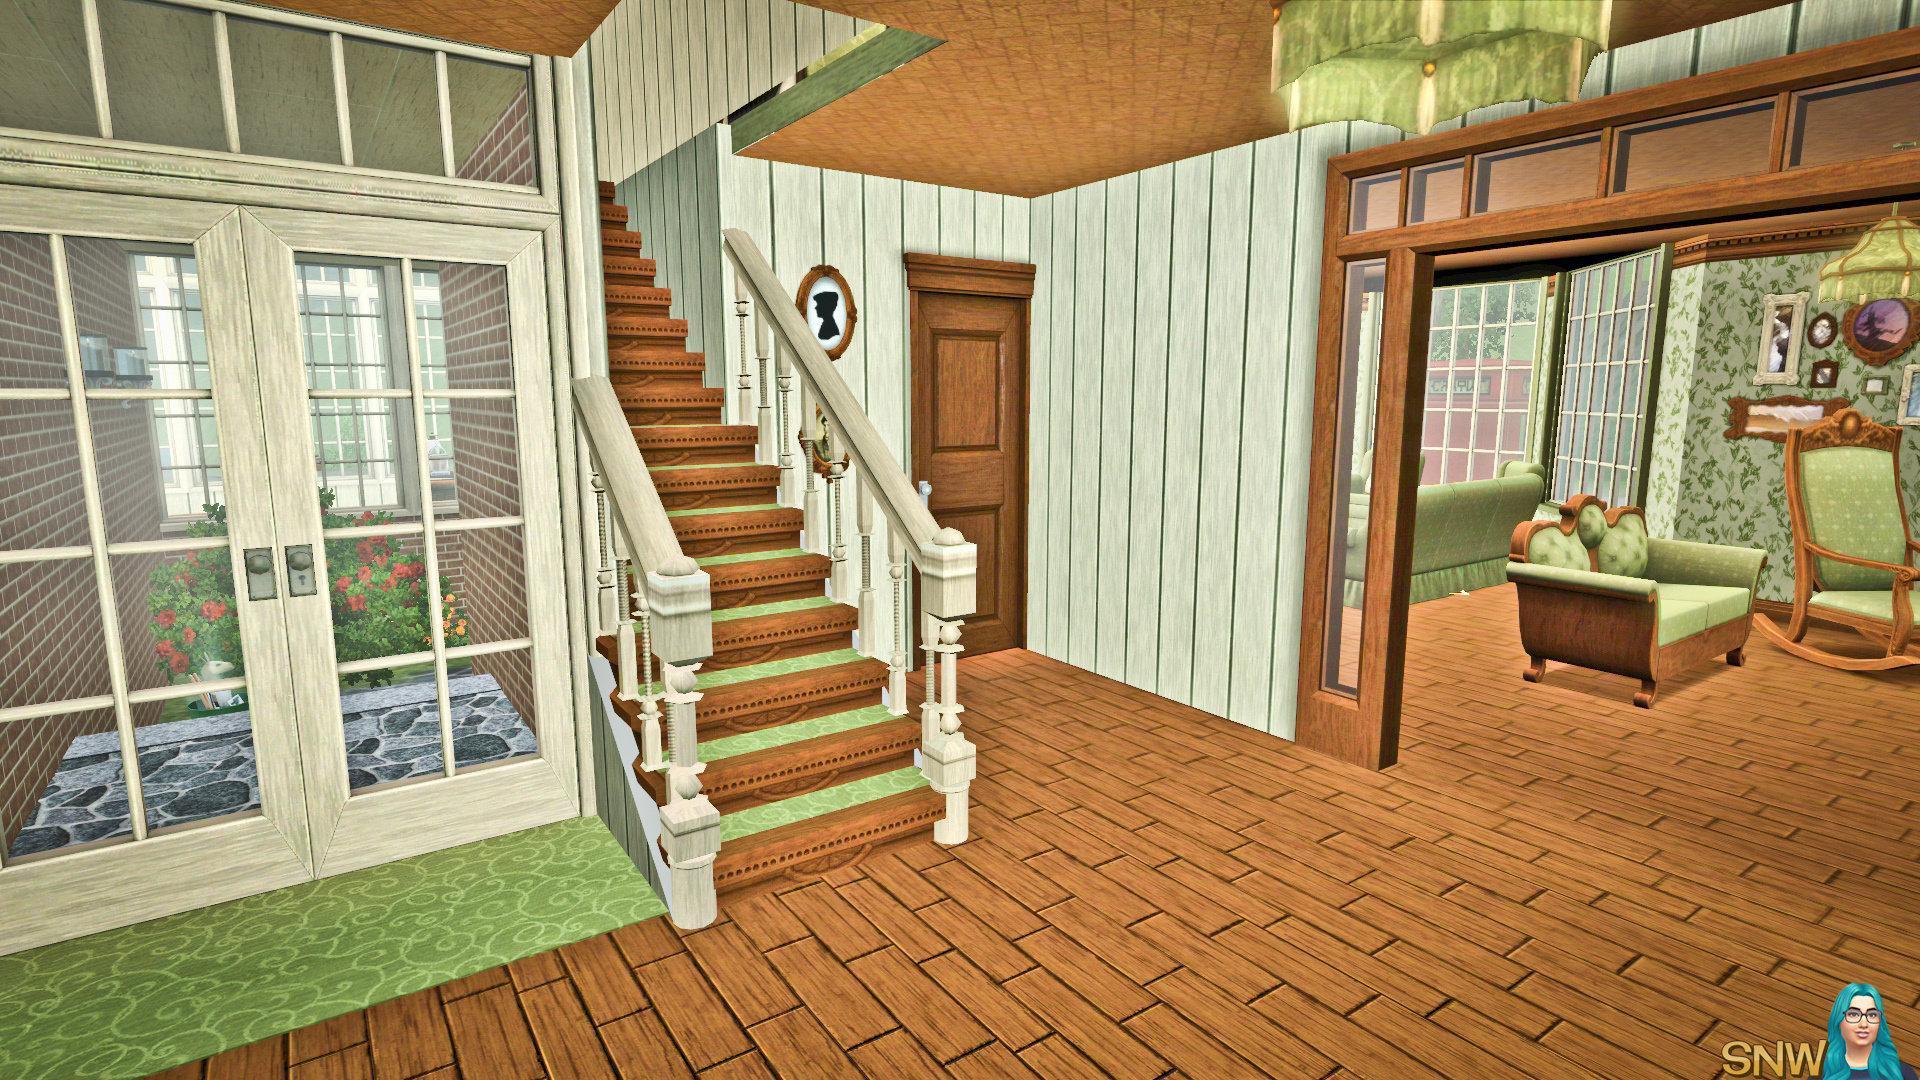 How To Build Houses In The Sims